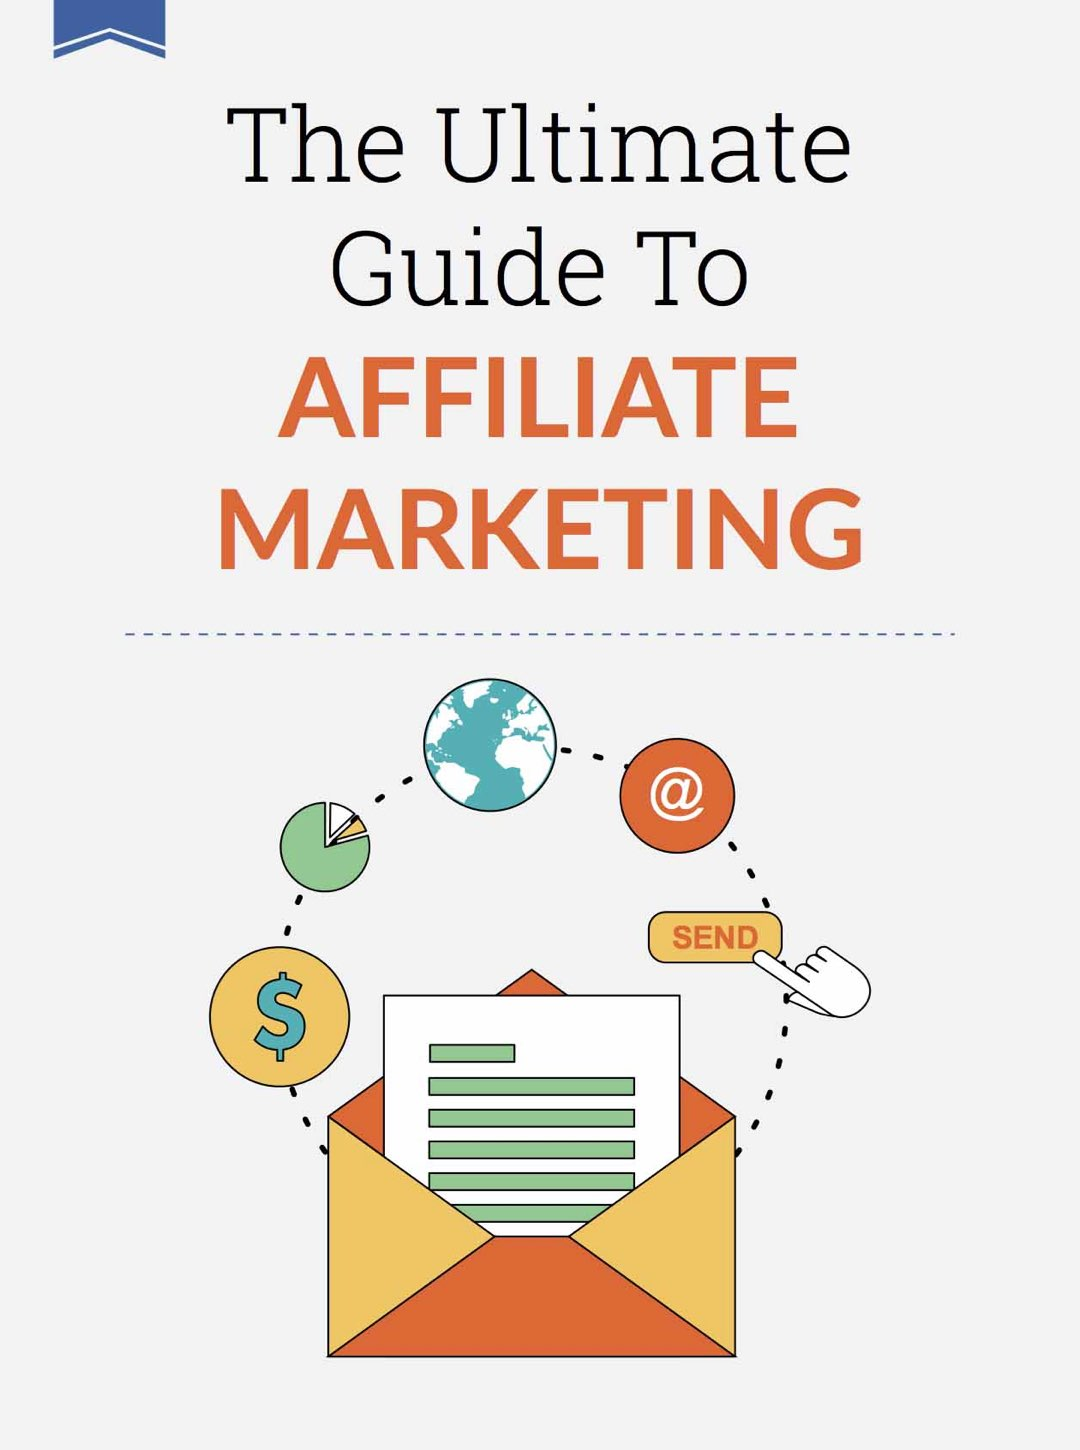 The Ultimate Guide to Affiliate Marketing